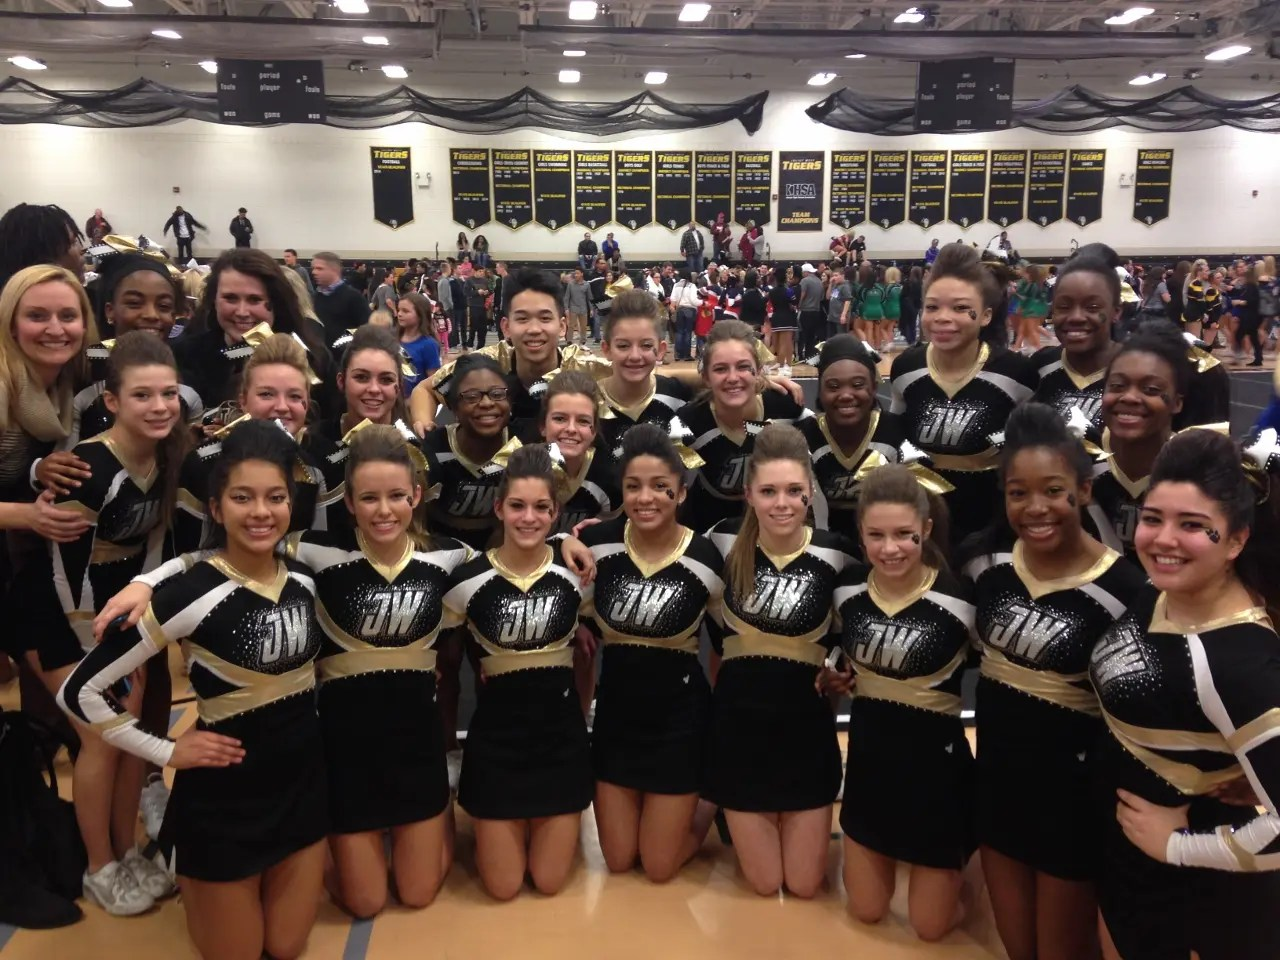 2014 2015 Jwhs Varsity Cheerleaders Headed To State Competition